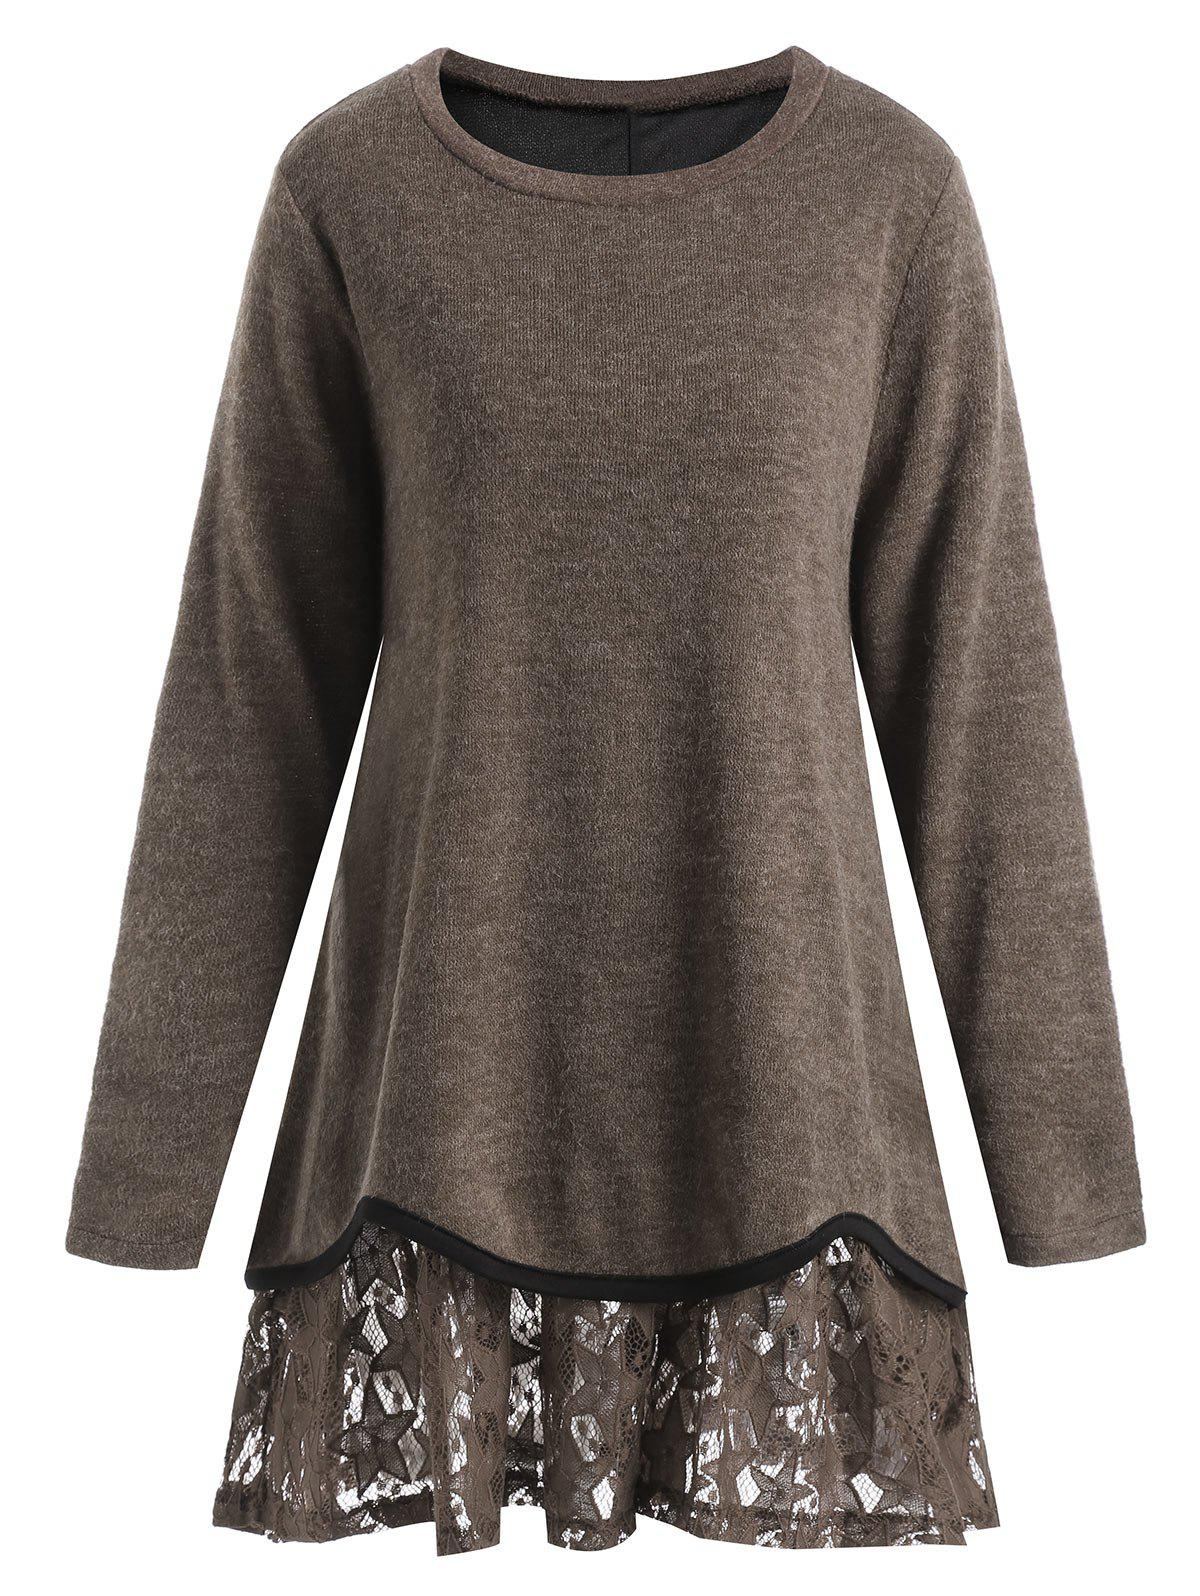 Plus Size Overlay Star Lace KnitwearWOMEN<br><br>Size: 4XL; Color: DARK CAMEL; Type: Pullovers; Material: Acrylic,Polyester; Sleeve Length: Full; Collar: Round Neck; Style: Fashion; Season: Fall,Spring; Pattern Type: Solid; Weight: 0.4350kg; Package Contents: 1 x Knitwear;